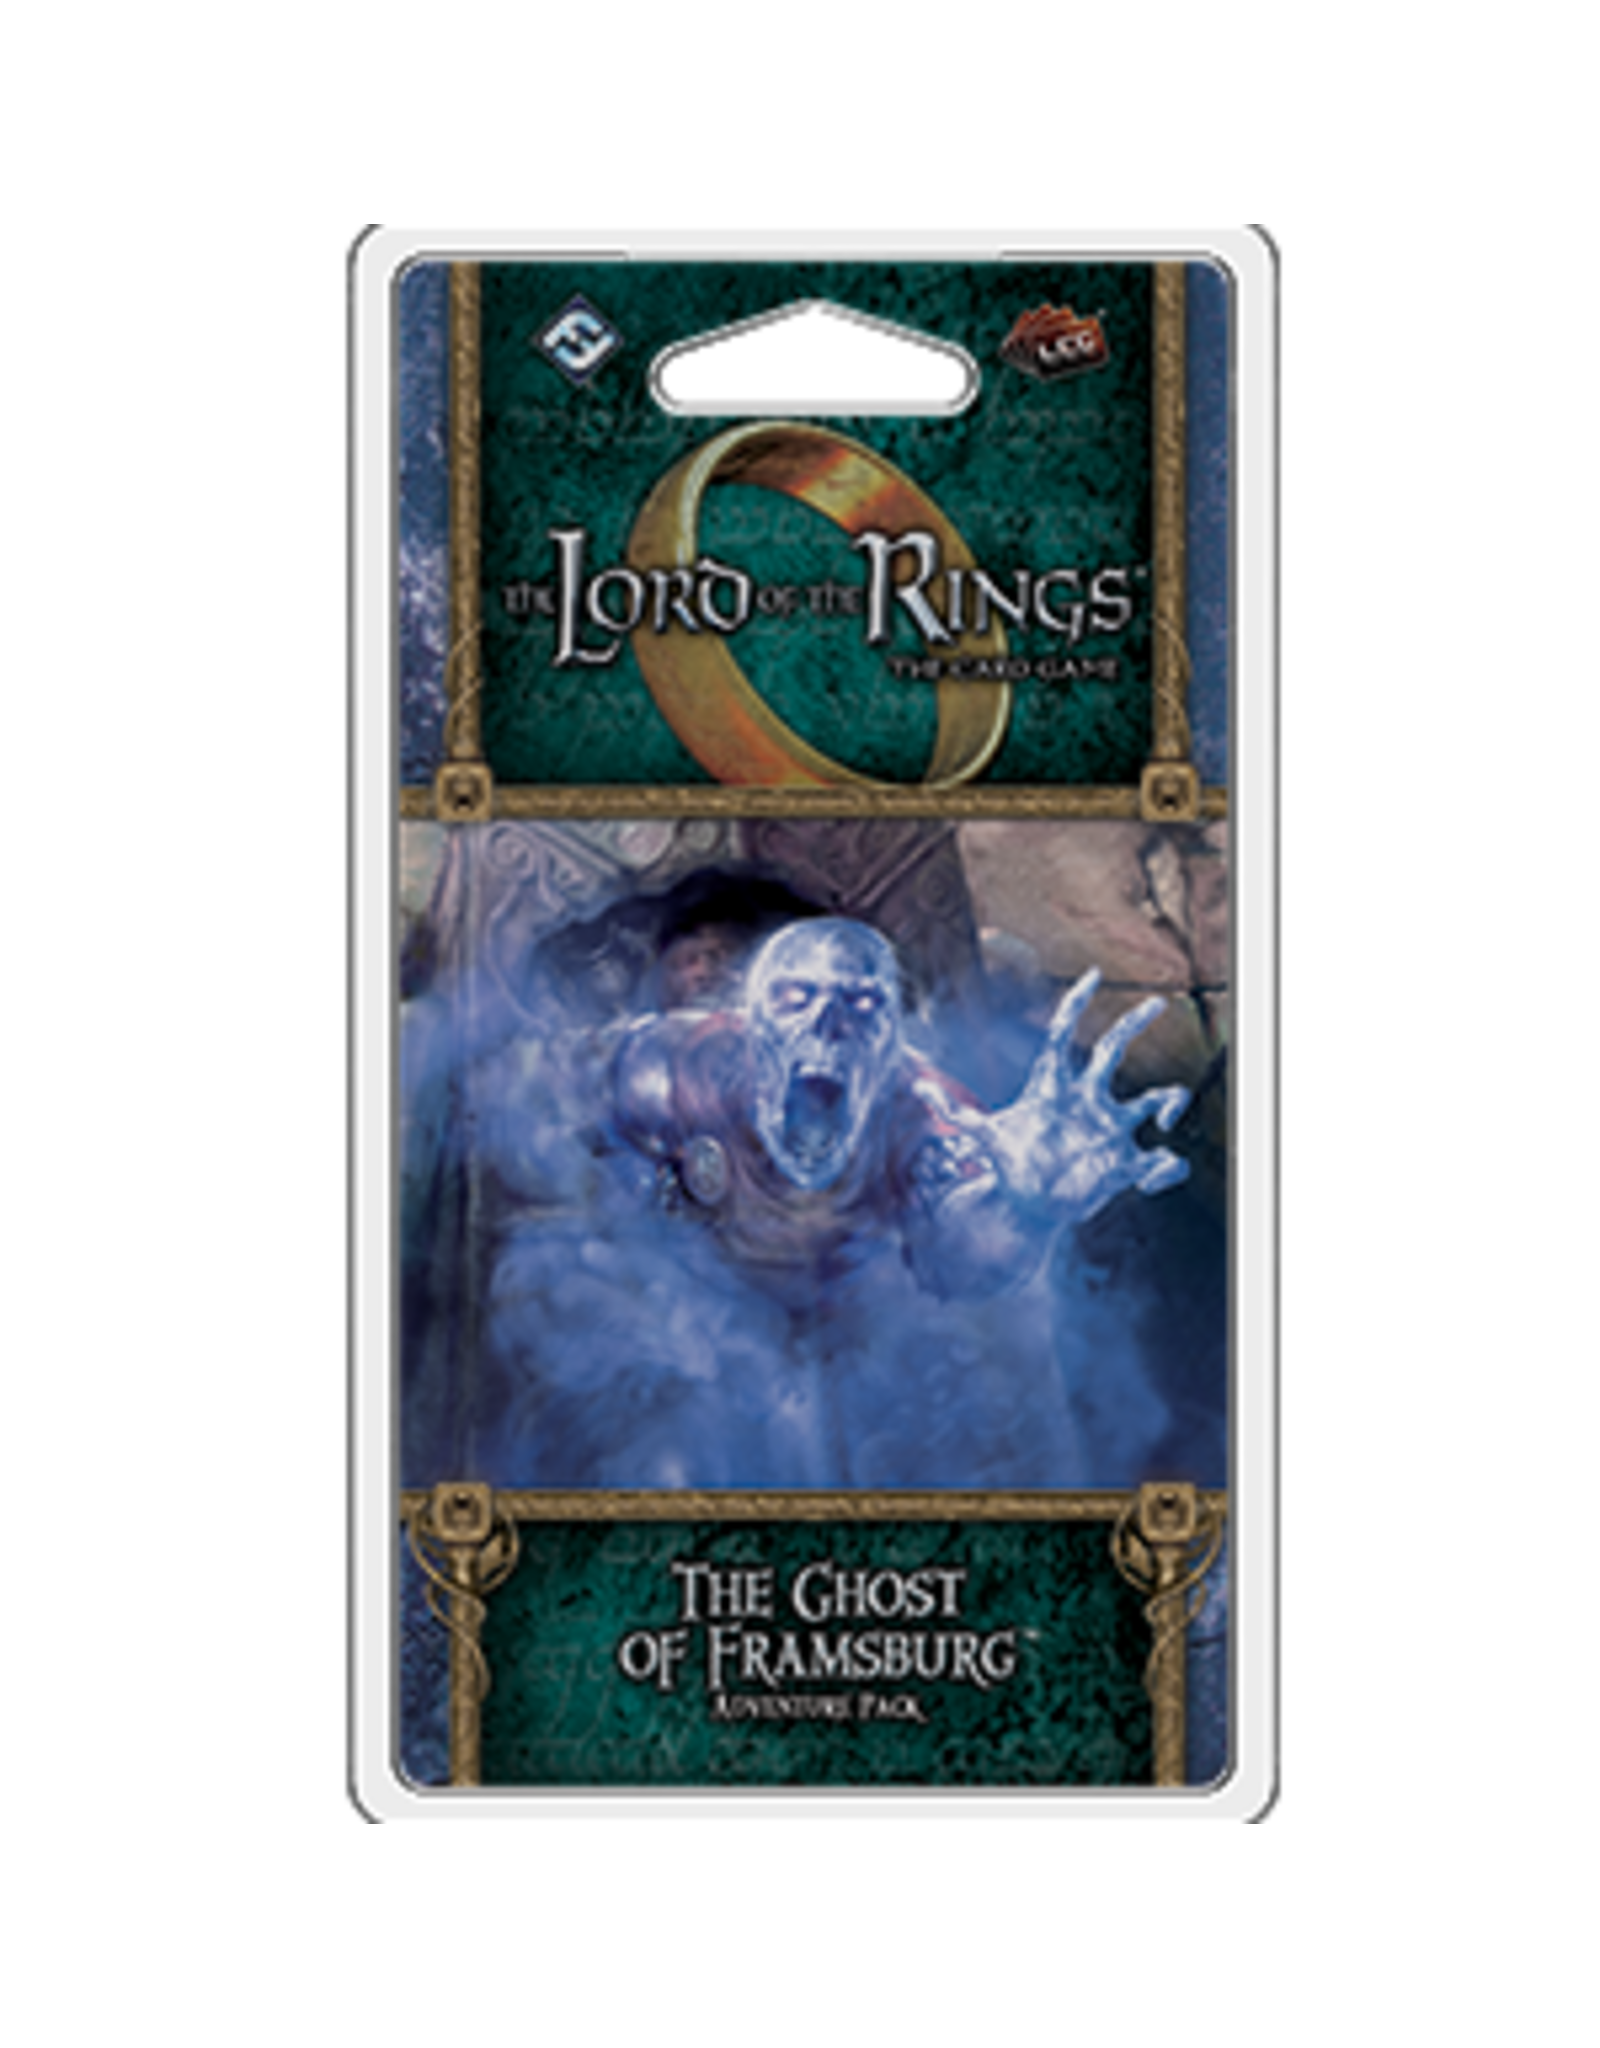 Fantasy Flight Games The Lord of the Rings: The Card Game - The Ghost of Framsburg